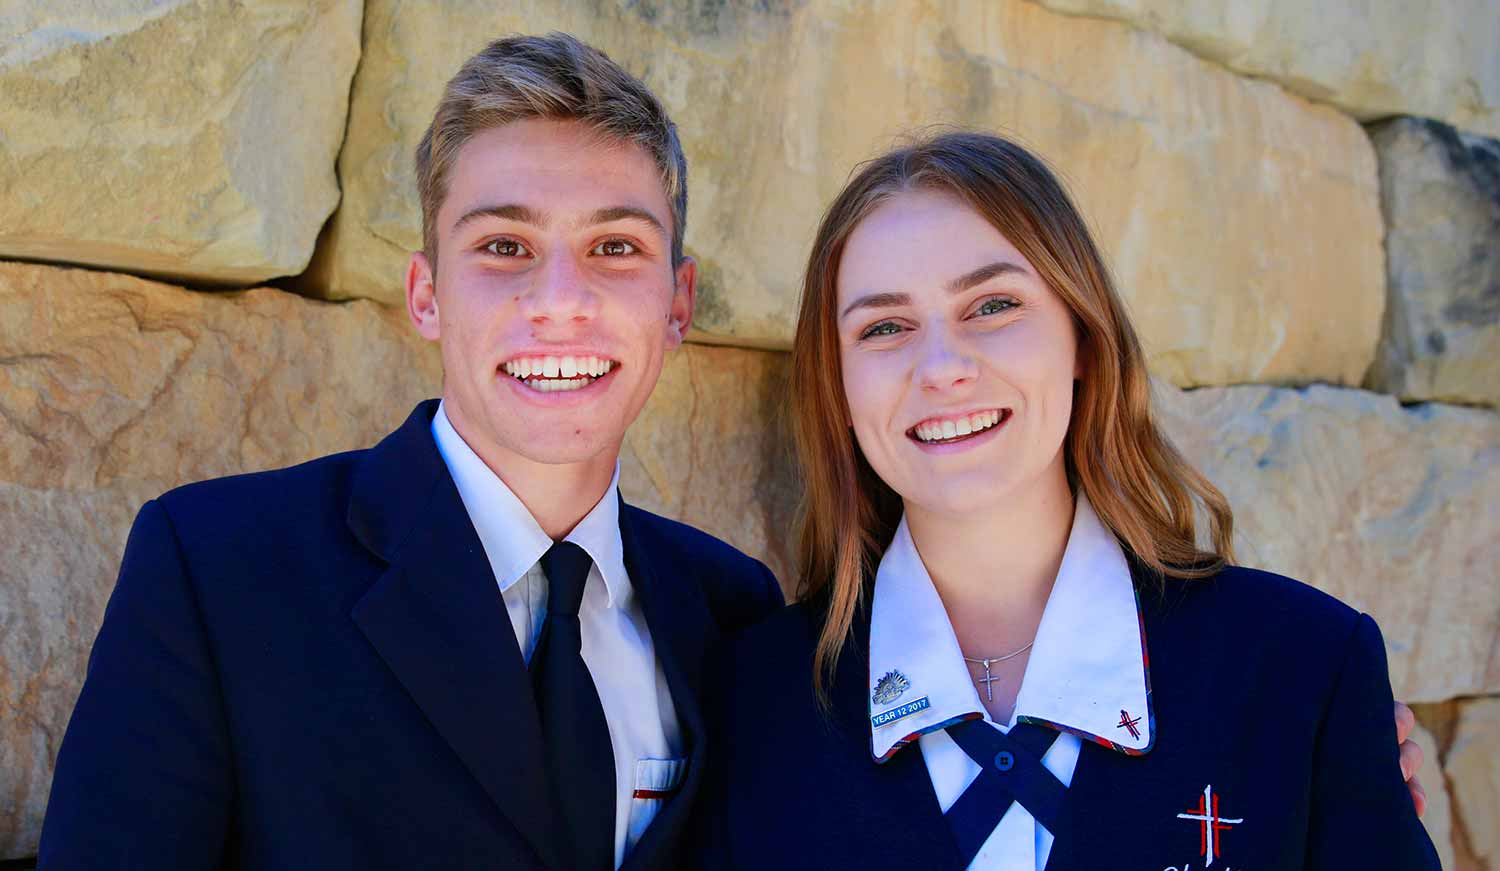 charlton christian college opportunities